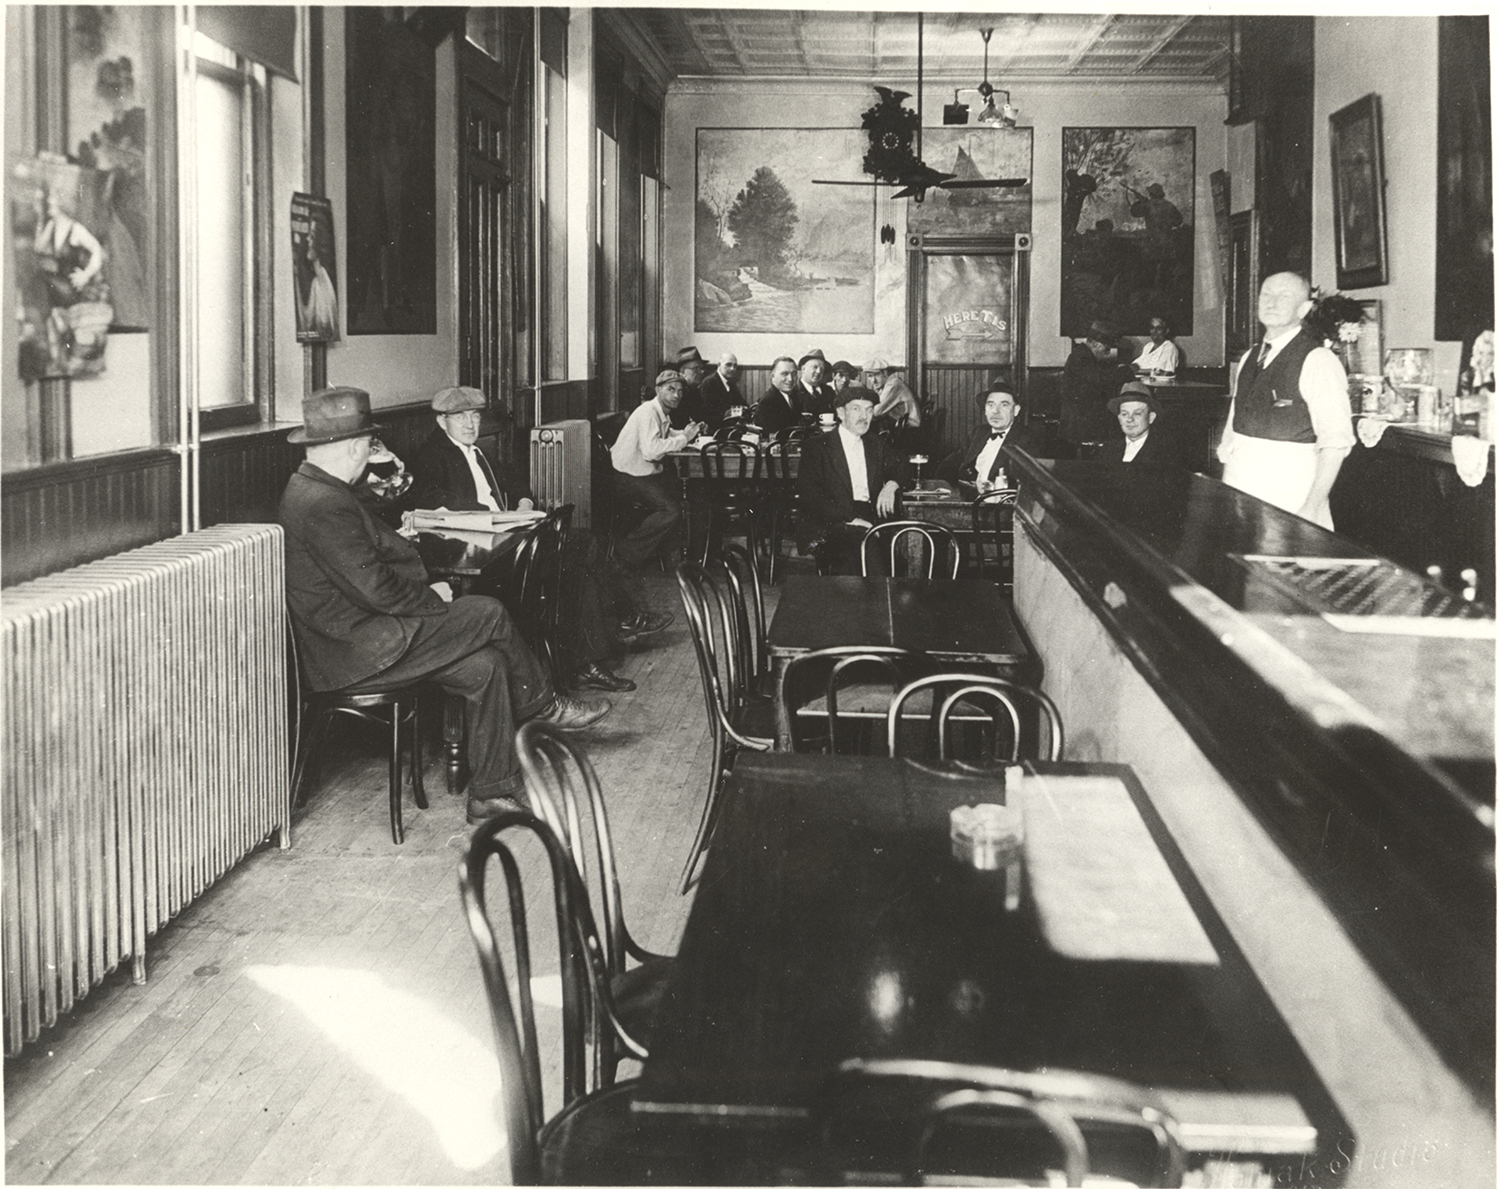 Zoglmann's Restaurant interior, 1934. Zoglmann-Linz Family Photo Collection. MSS 874, Detre Library & Archives, Heinz History Center.